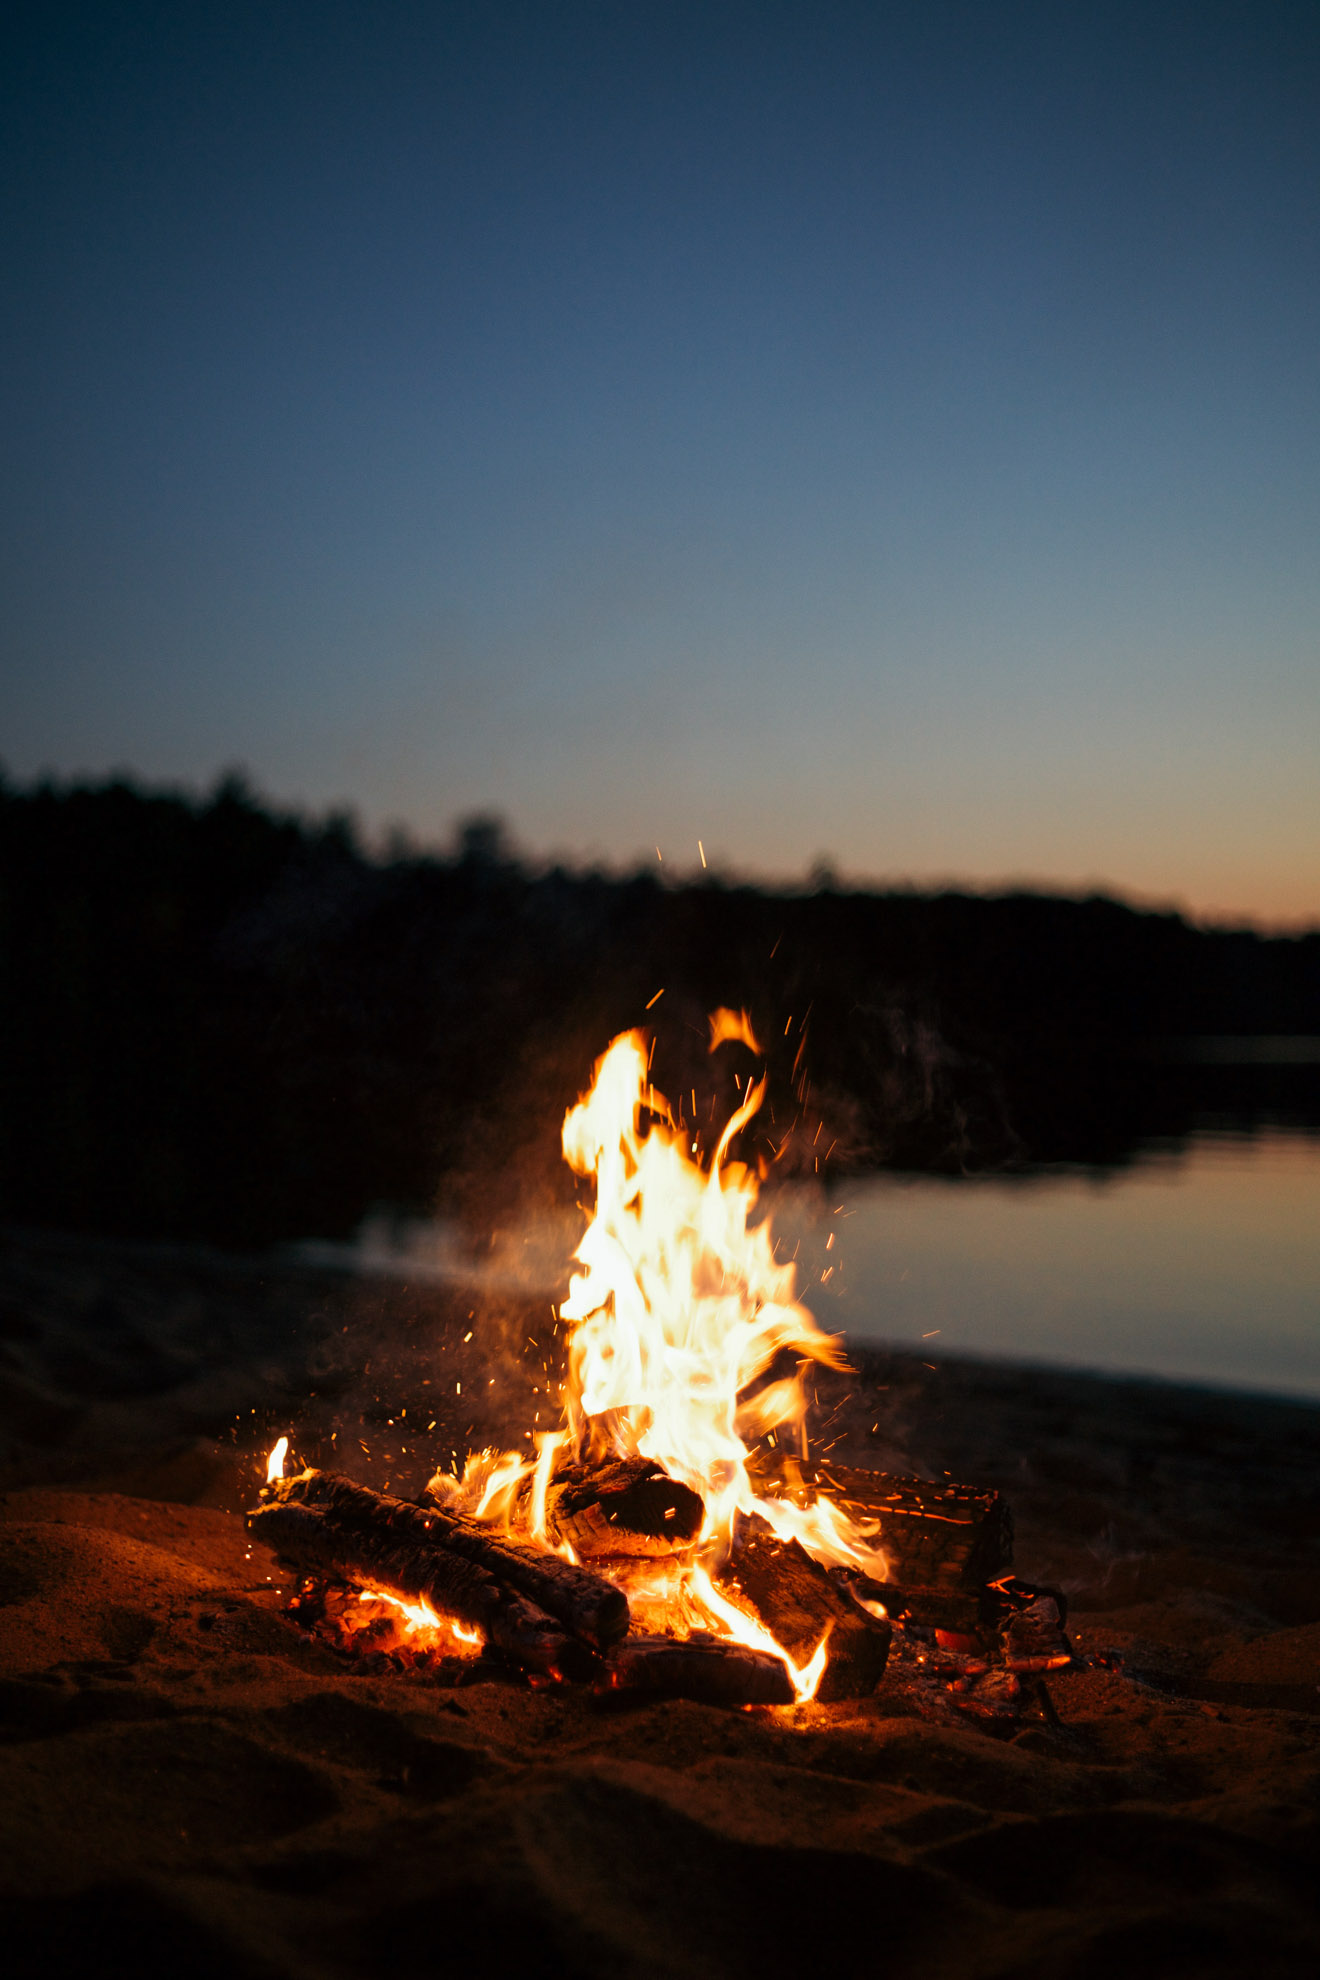 campfire on the beach at night miss northerner